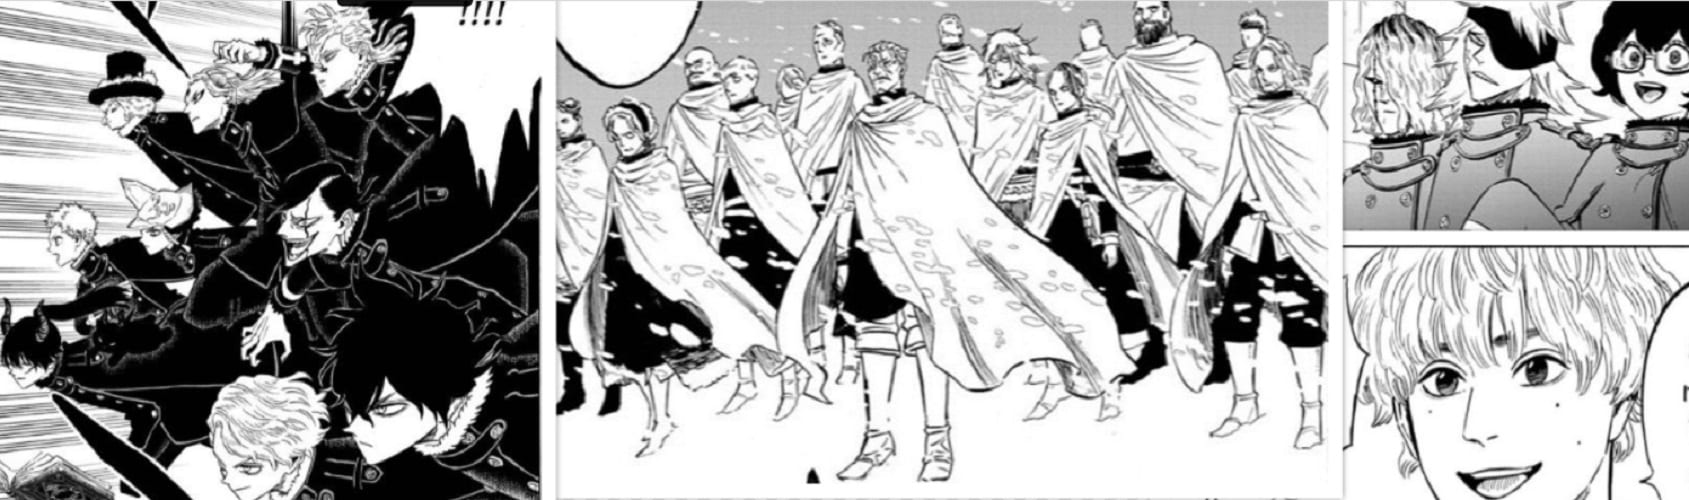 Black Clover Chapter 274: New Players In The Battle Against The Spade Kingdom And Megicula